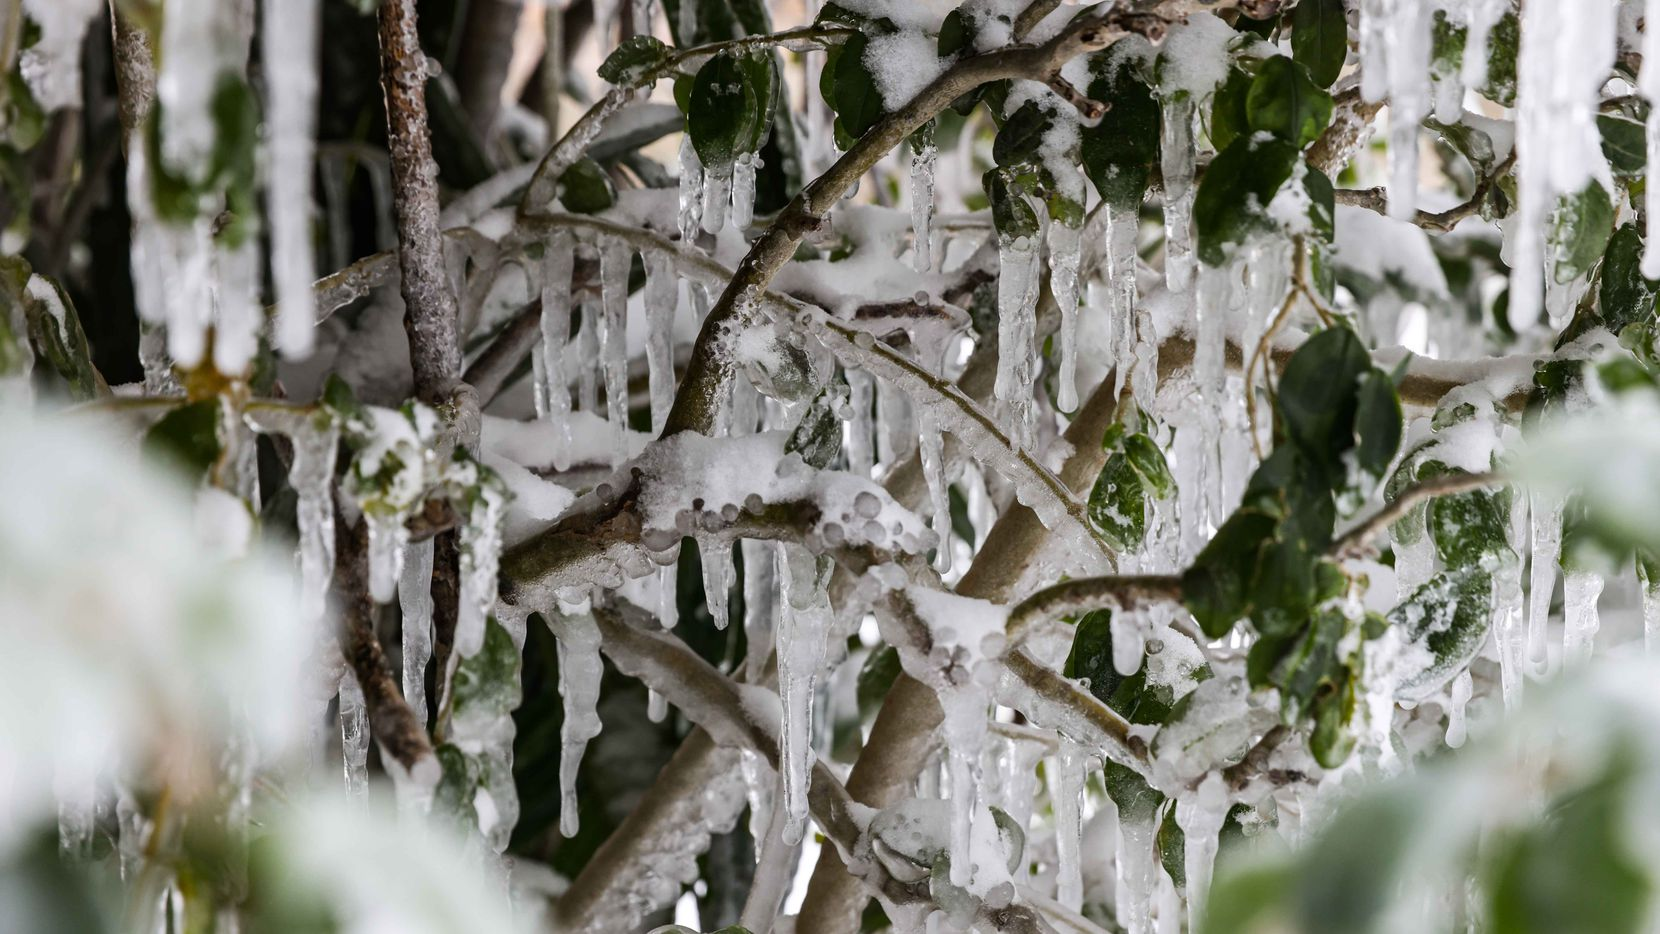 Shrubbery around the city was covered in ice as a winter storm brings snow and freezing temperatures to North Texas on Monday, February 15, 2021, in Dallas.